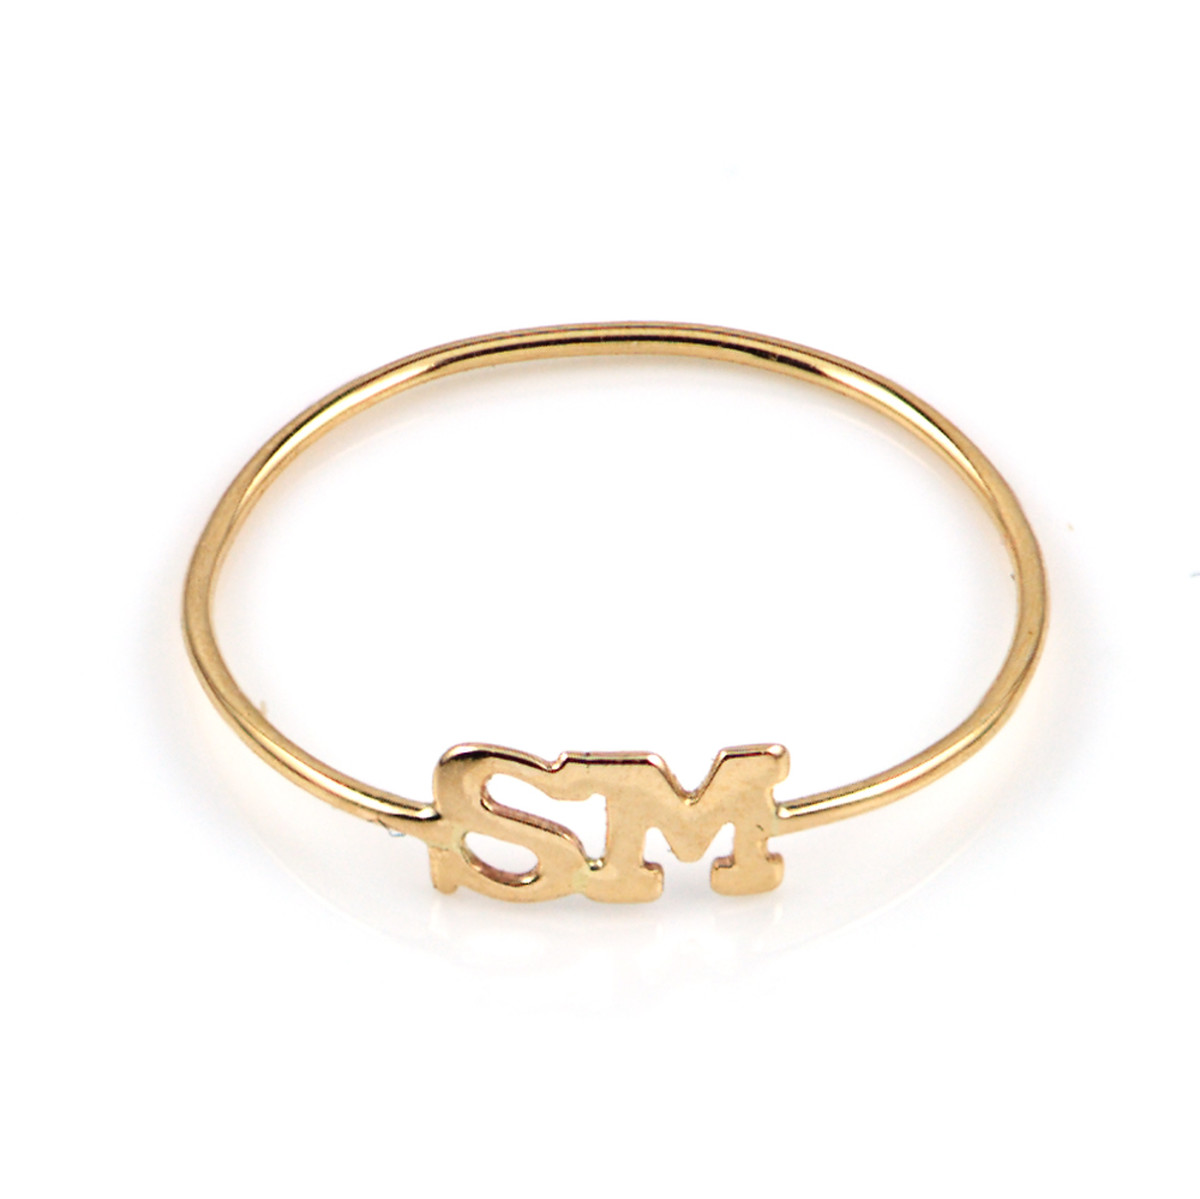 SkylerMan_Jewelery0110.jpg